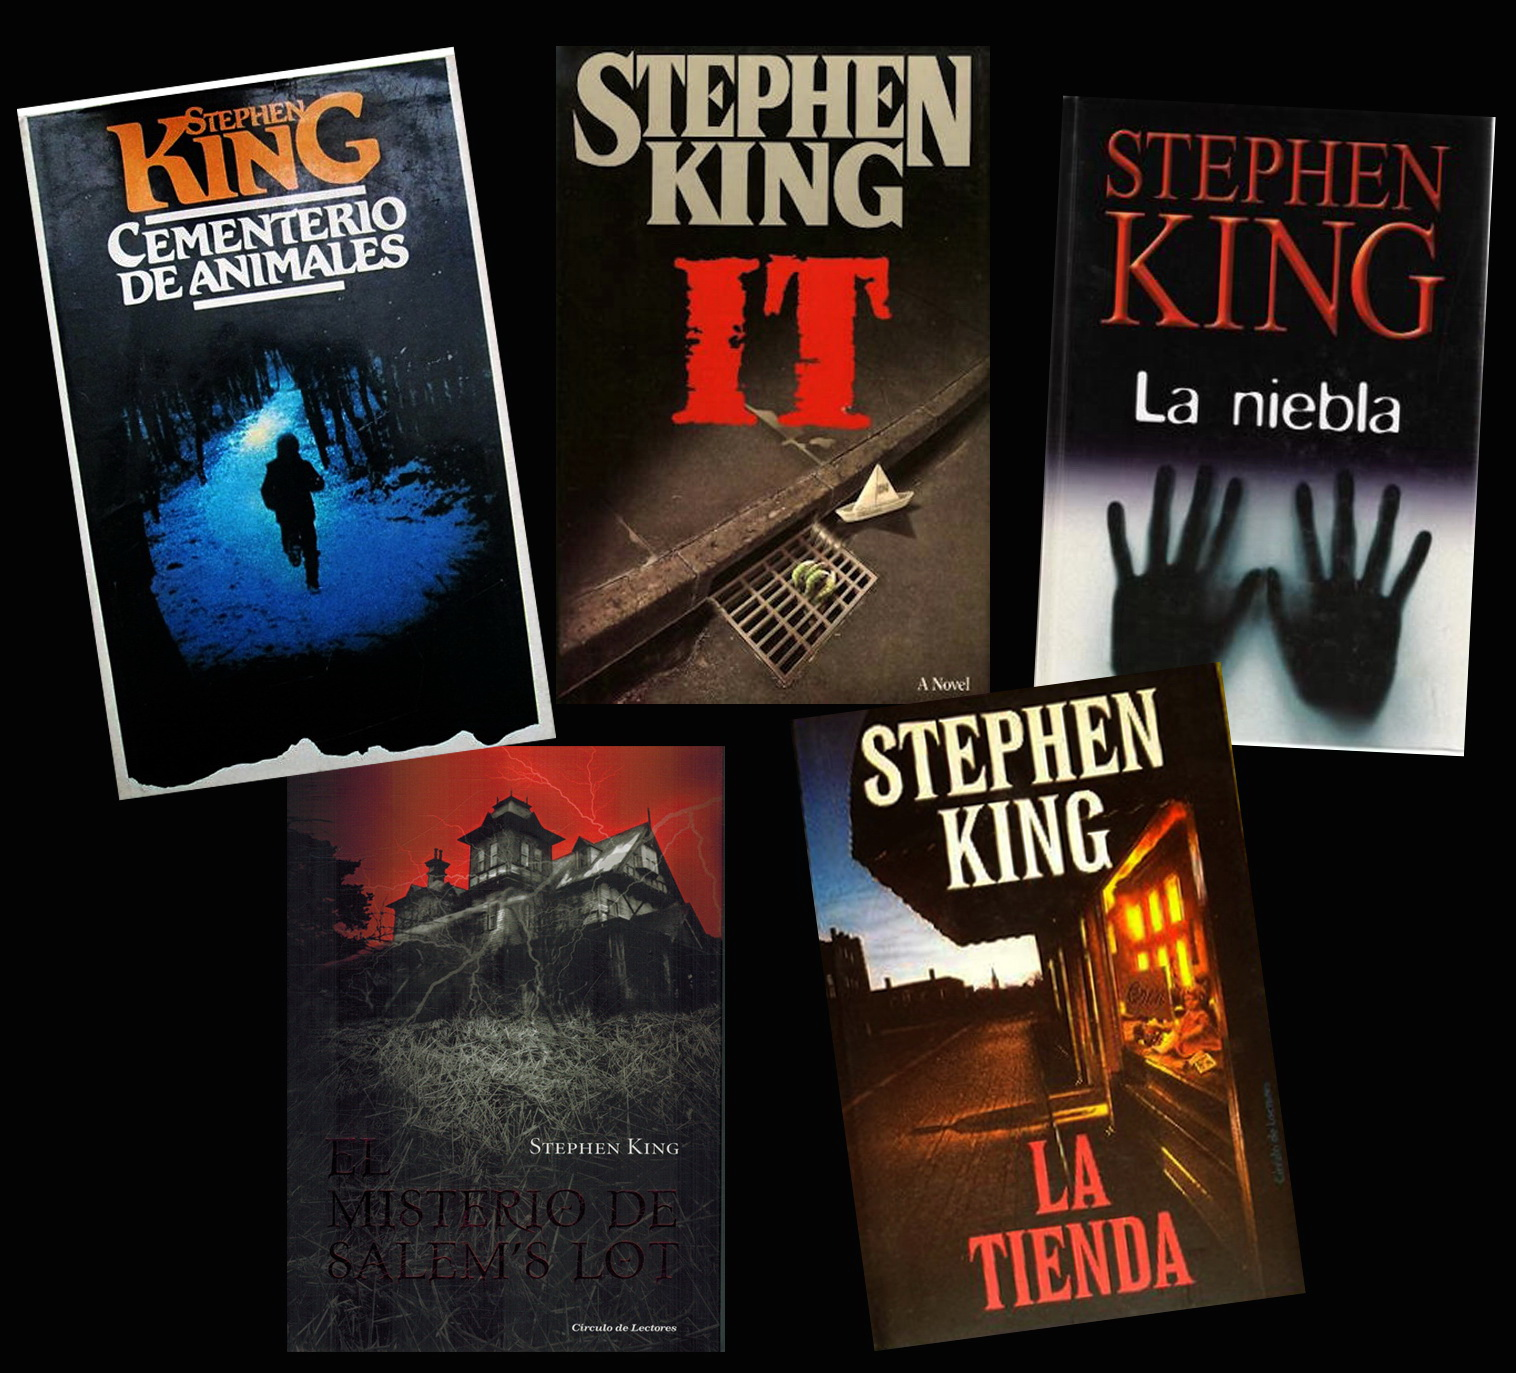 El Ultimo Libro De Stephen King Jokin Stephen King El Rey Descoronado